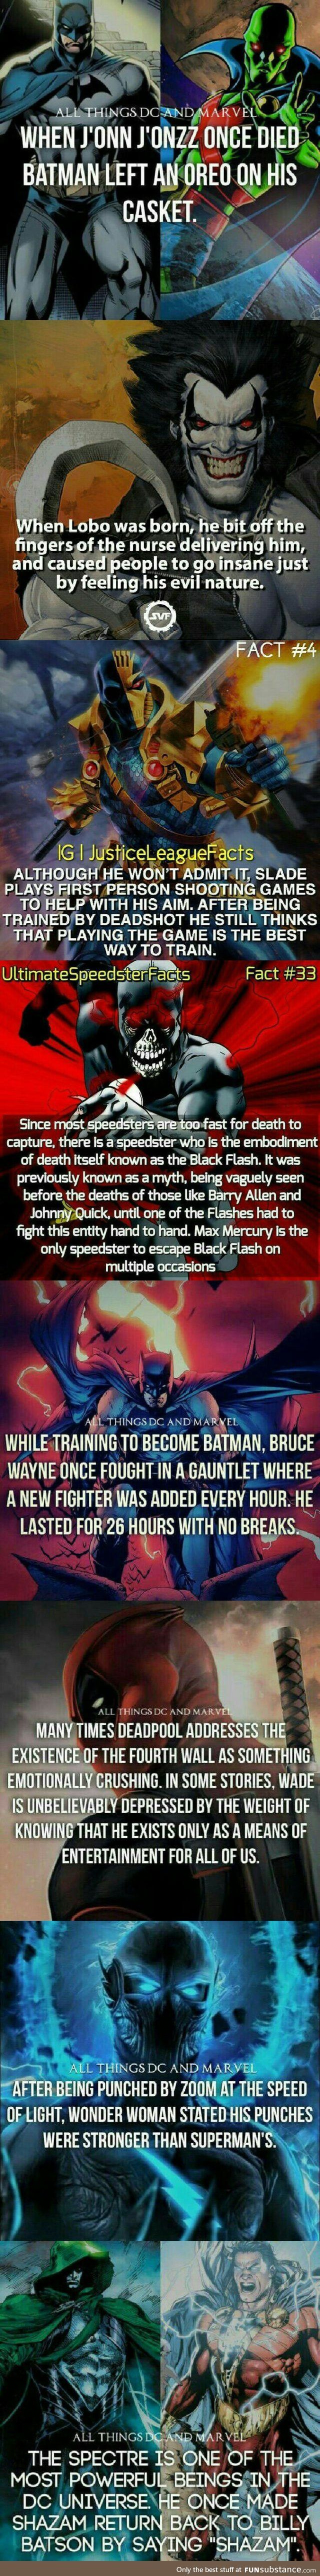 Marvel & DC facts comp